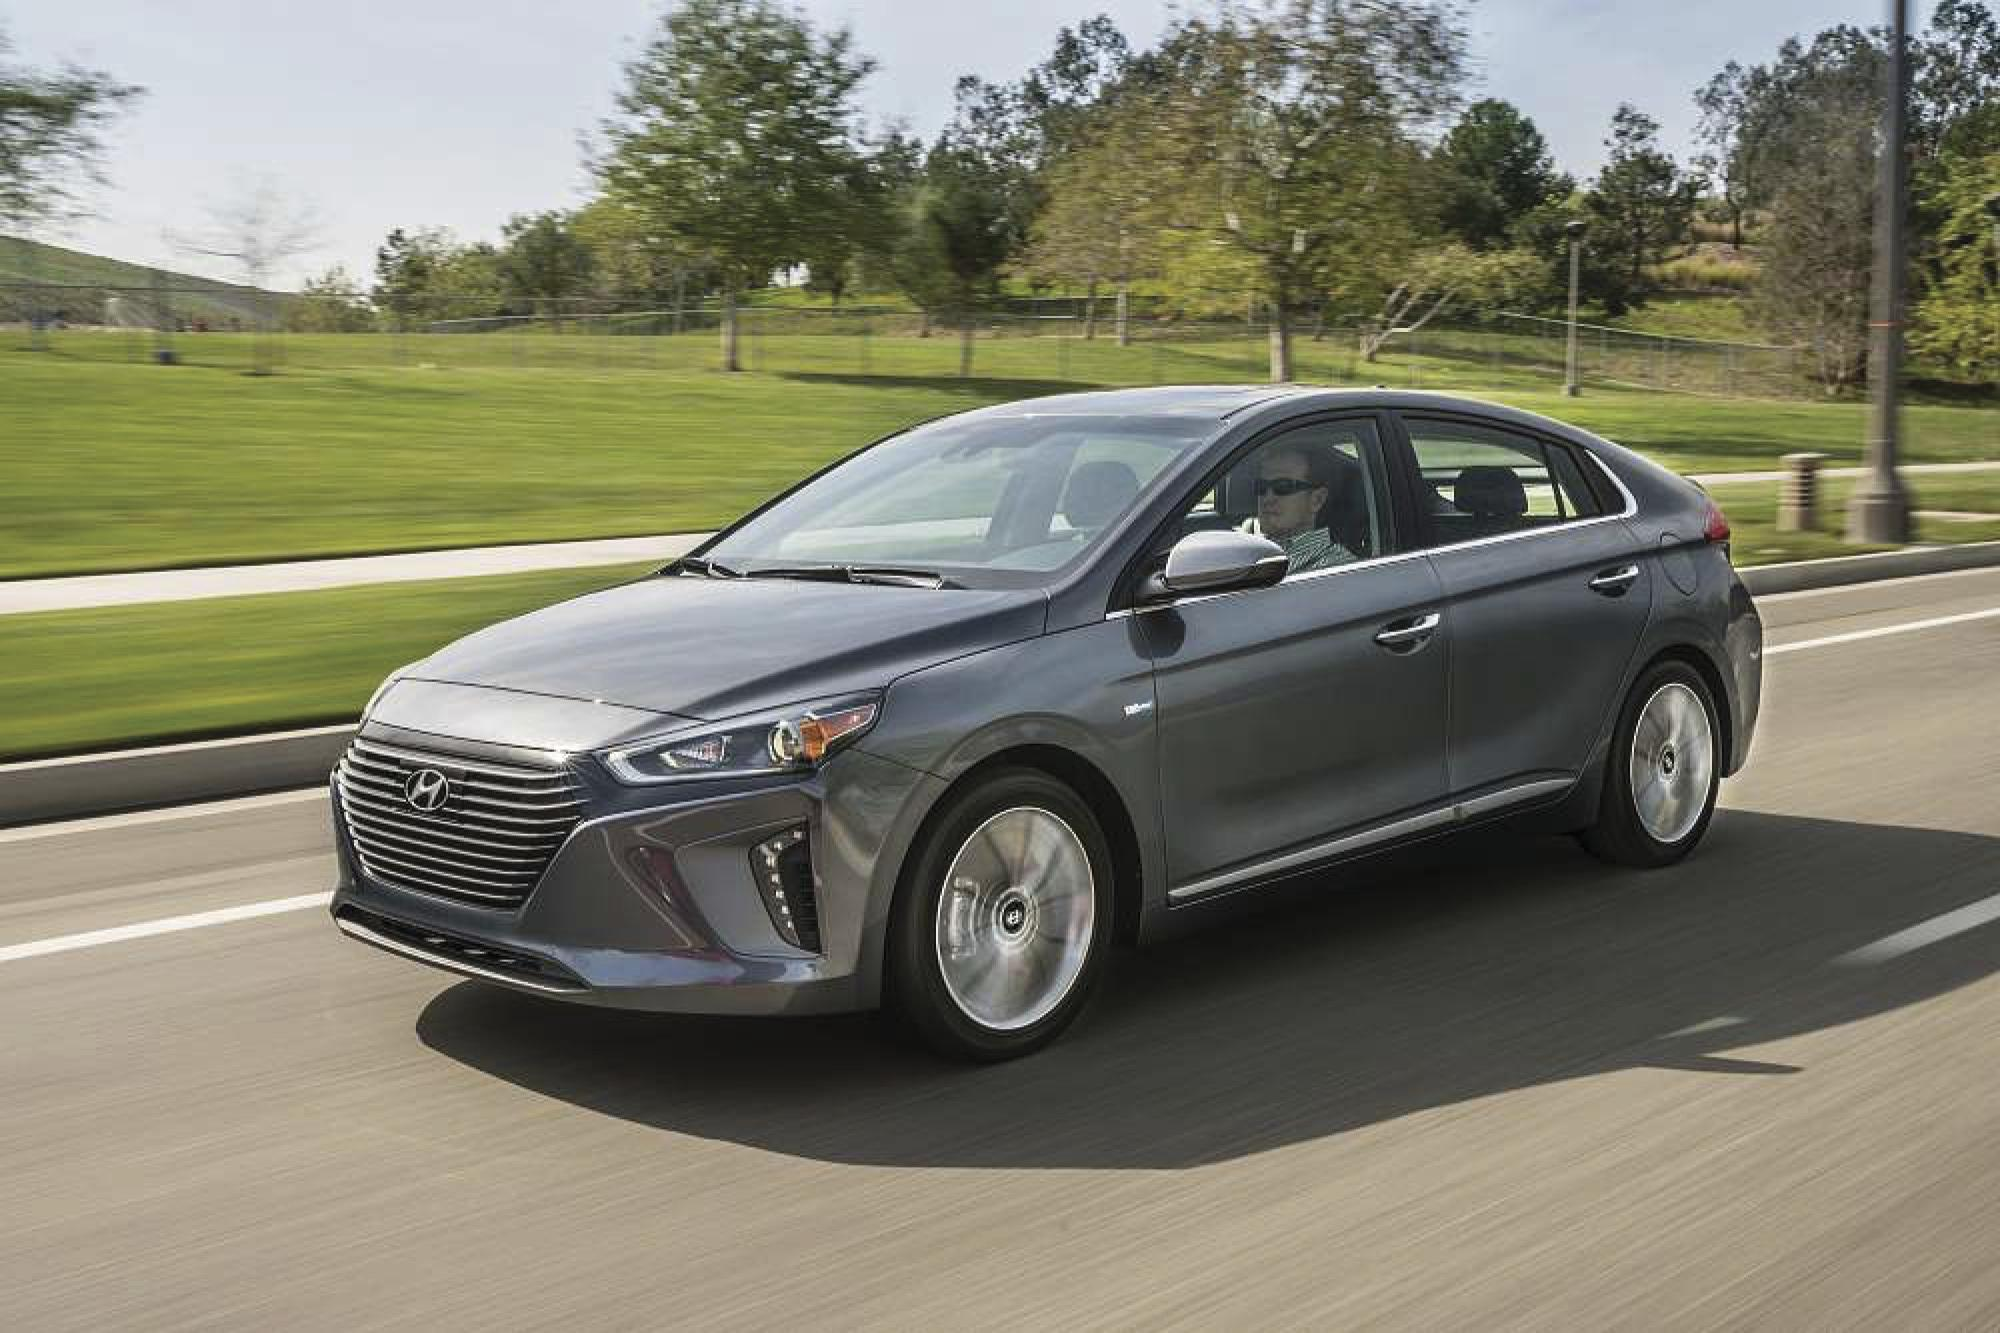 Ioniq Hybrid: Hyundai's three electrified powertrains bring high energy efficiency